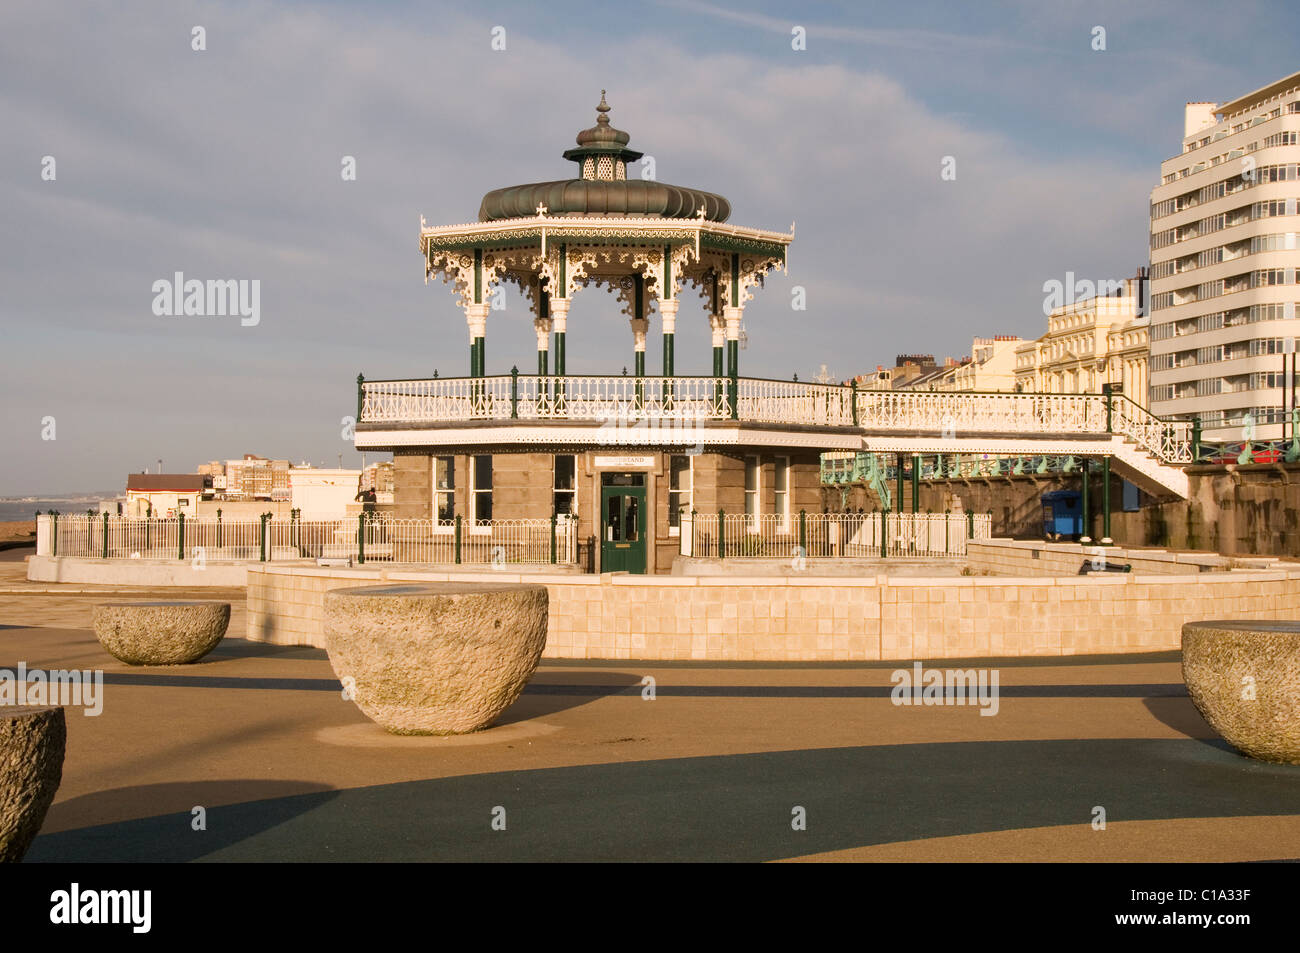 The Bandstand at Brighton Seafront Sussex England - Stock Image